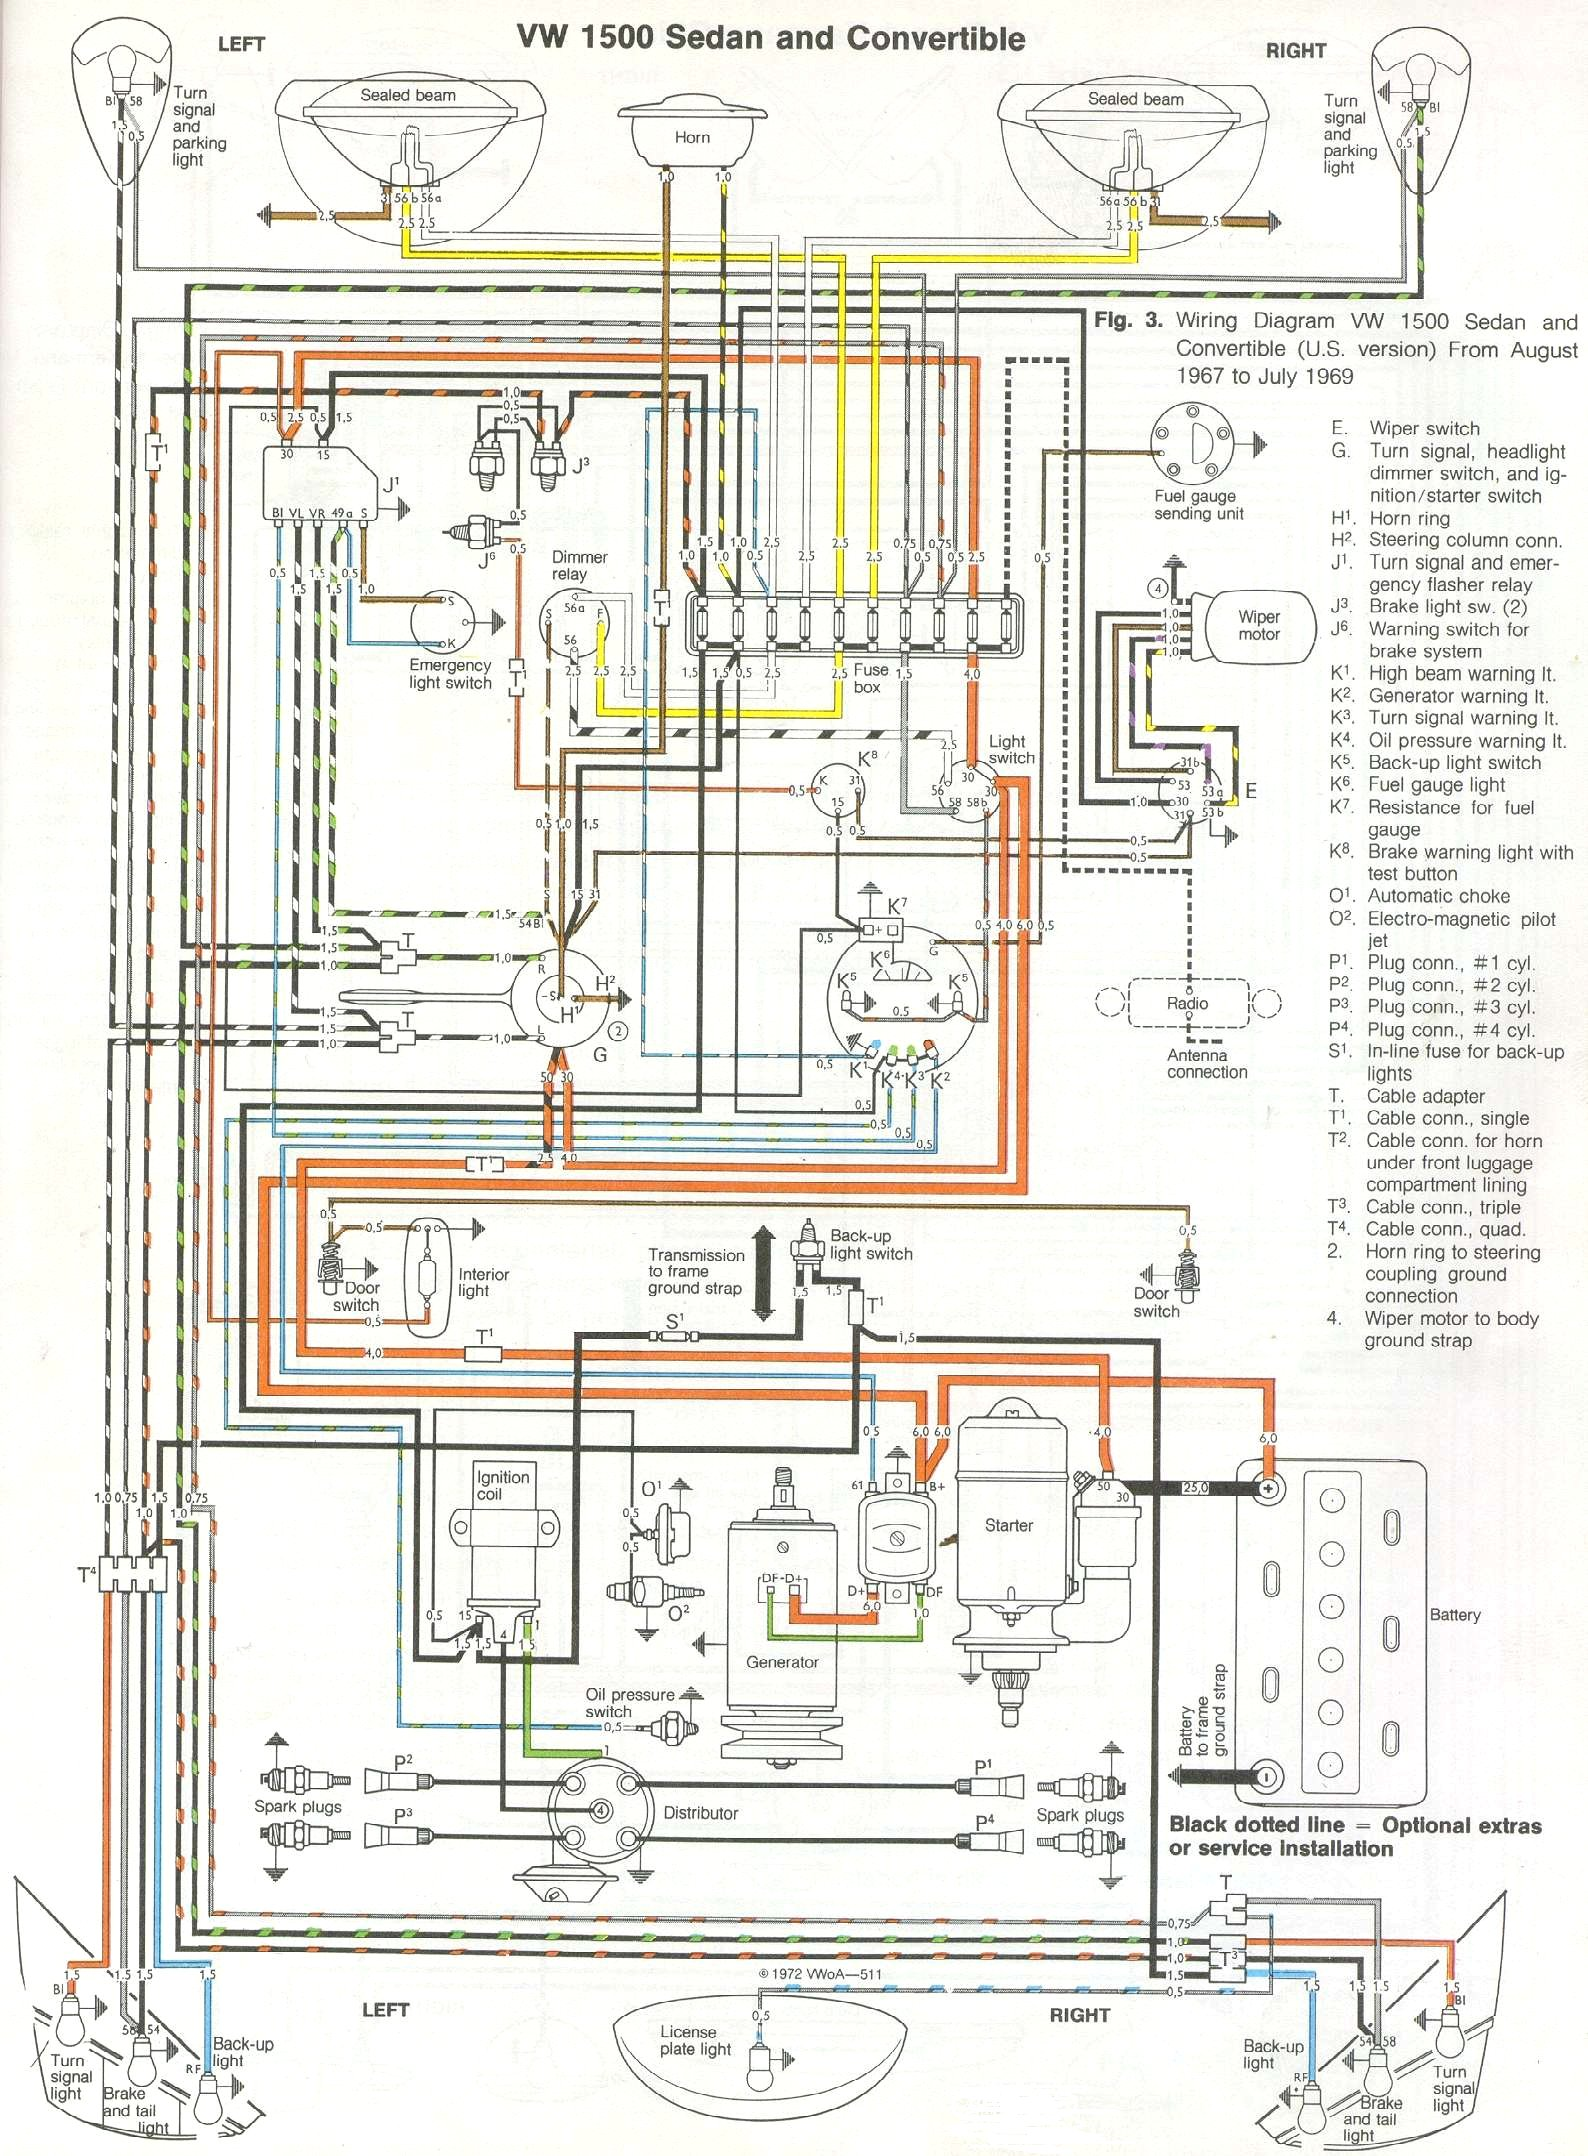 bug_6869 71 vw beetle wiring diagram 71 wiring diagrams instruction 2001 vw beetle wiring diagram at mifinder.co